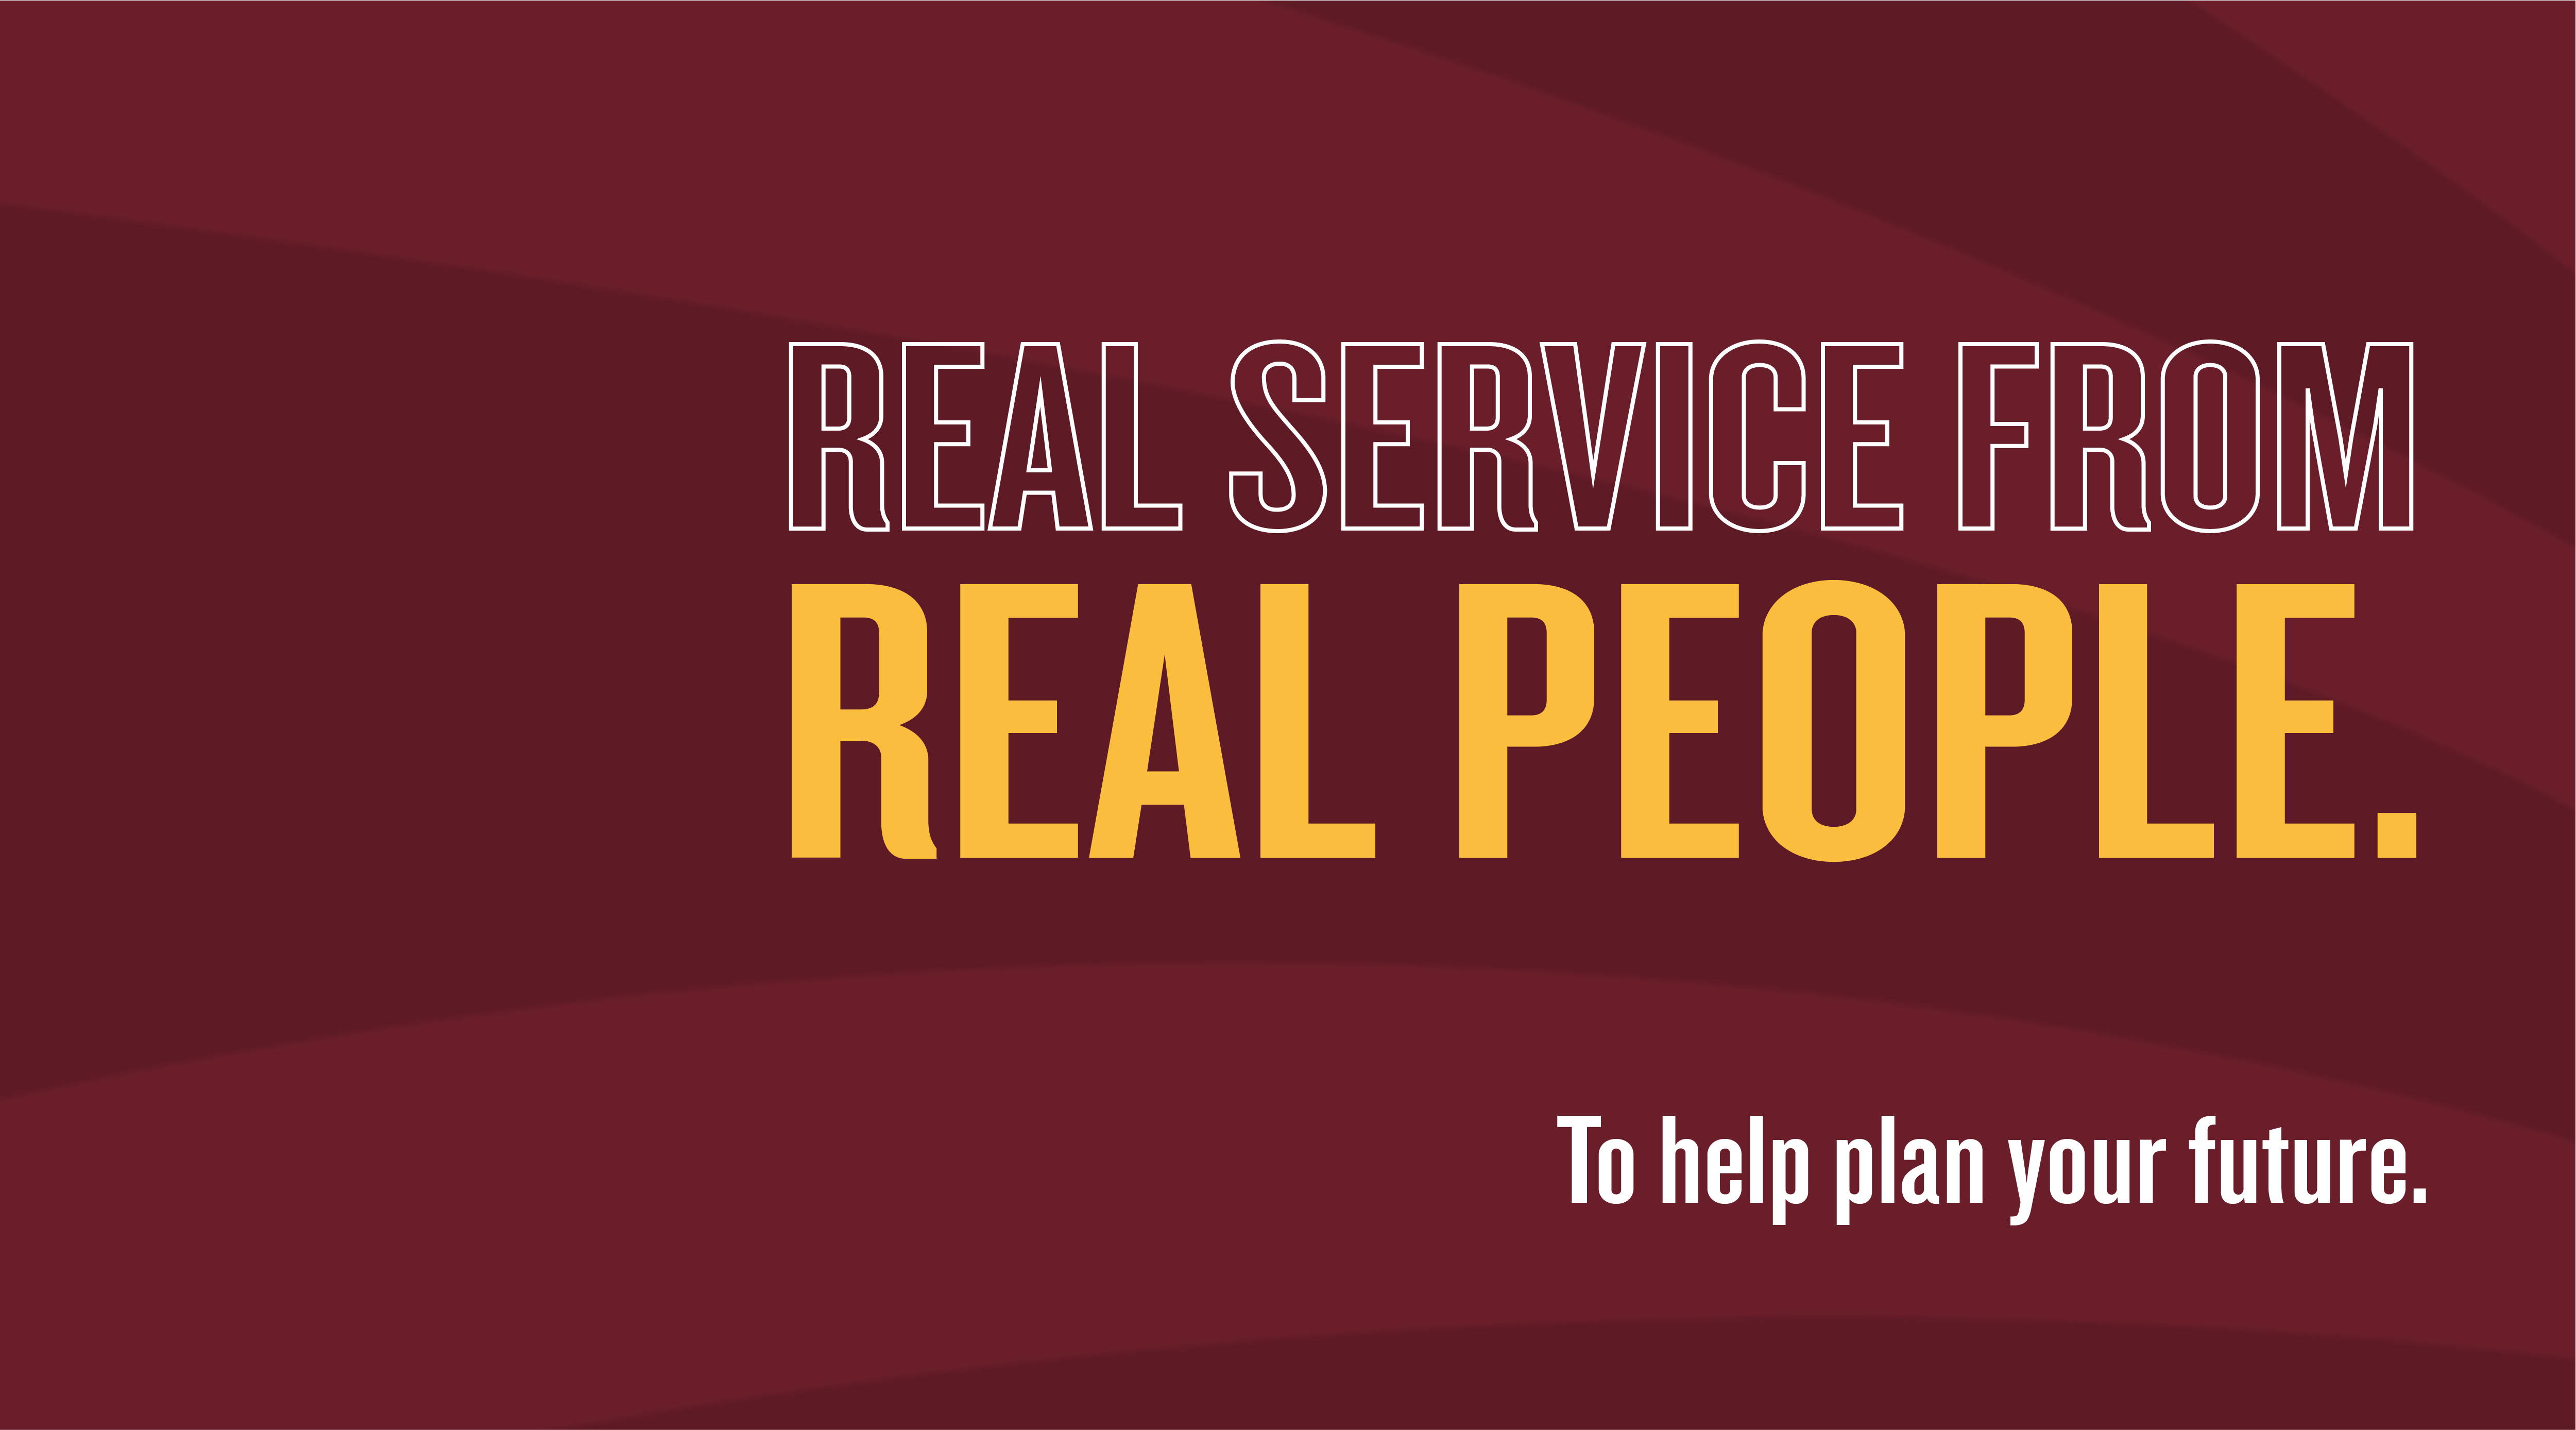 Real Service, Real People